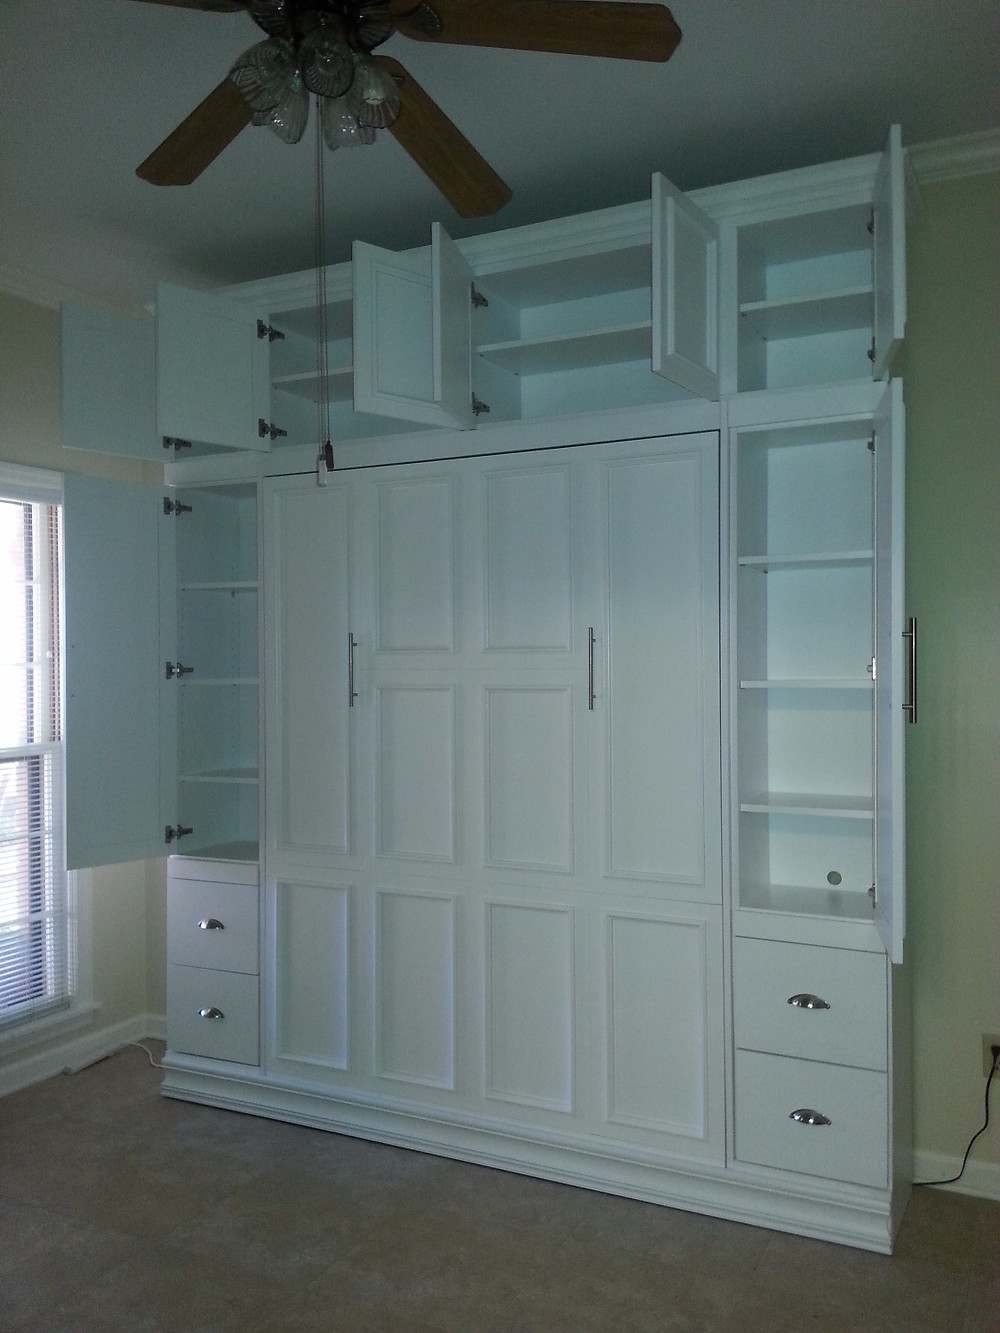 Murphy Bed showing cabinet space